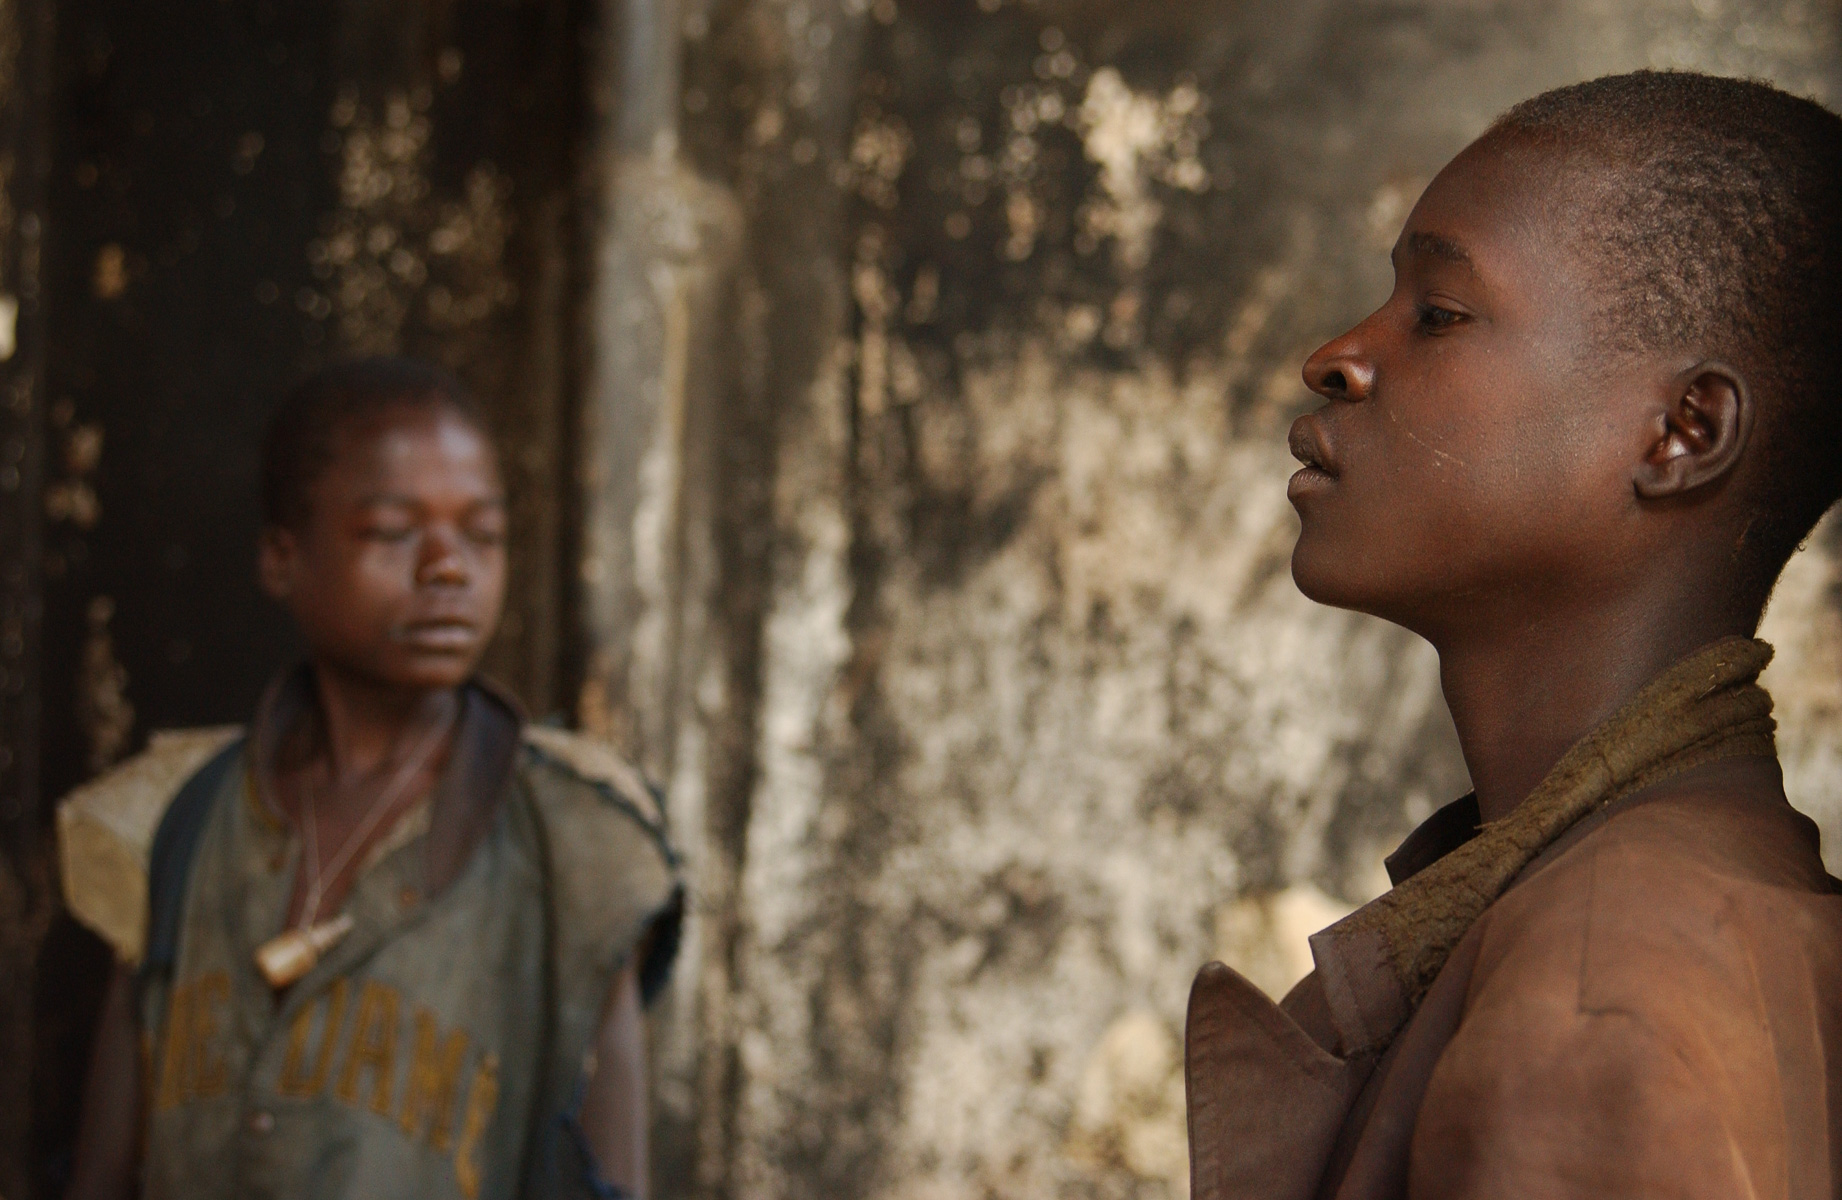 Rebels from the Lord's Resistance Army abducted Anywar Walter and his three brothers along with several hundred other people in Pajule, Northern Uganda. The rebels split the brothers into different groups and brought Walter to Sudan where he joined Joseph Kony's group. While in Sudan his younger brother was killed in a battle with the Ugandan Army and he does not know what happened to his other brothers. Behind him is Ojok Charles who was abducted with his cousin who was also killed by the Ugandan Army. They are being held at the Army Child Protection Unit in Gulu after escaping from the rebels. Uganda.